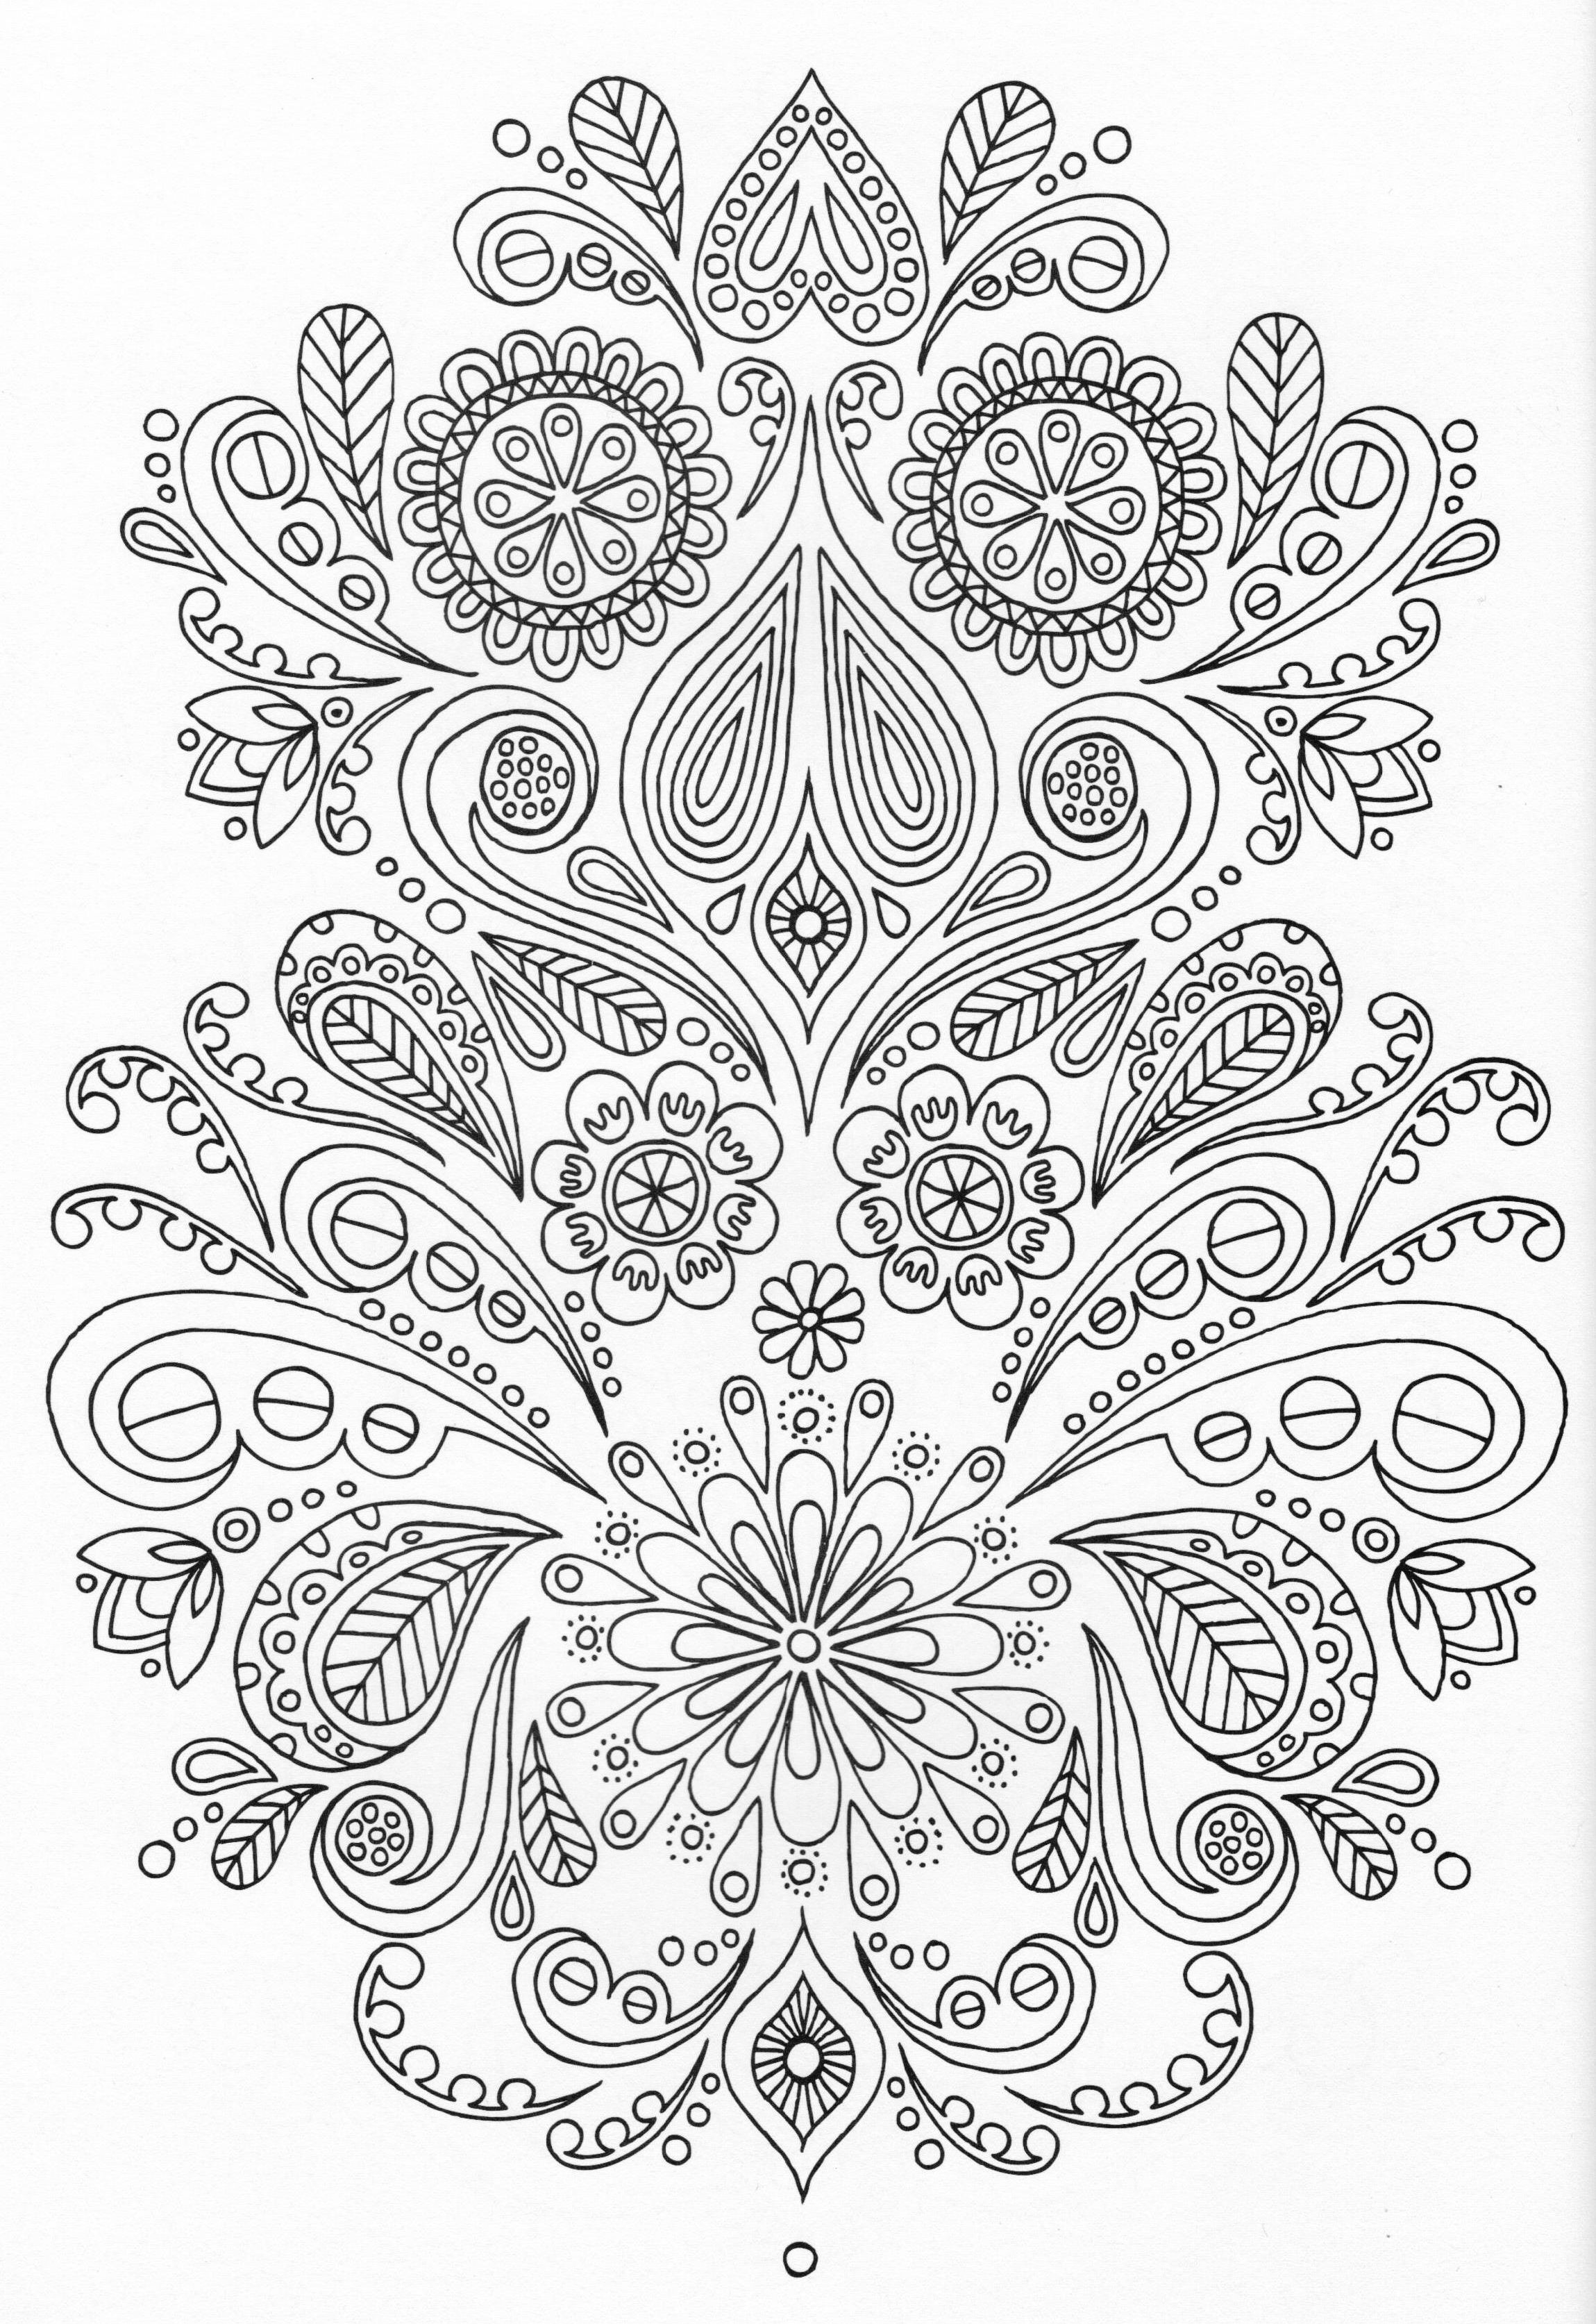 Adult coloring page | Join my grown-up coloring group on fb: "|2299|3347|?|d5fe882aa7ee8cef6f5ac0bbf40992fe|False|UNLIKELY|0.35143017768859863